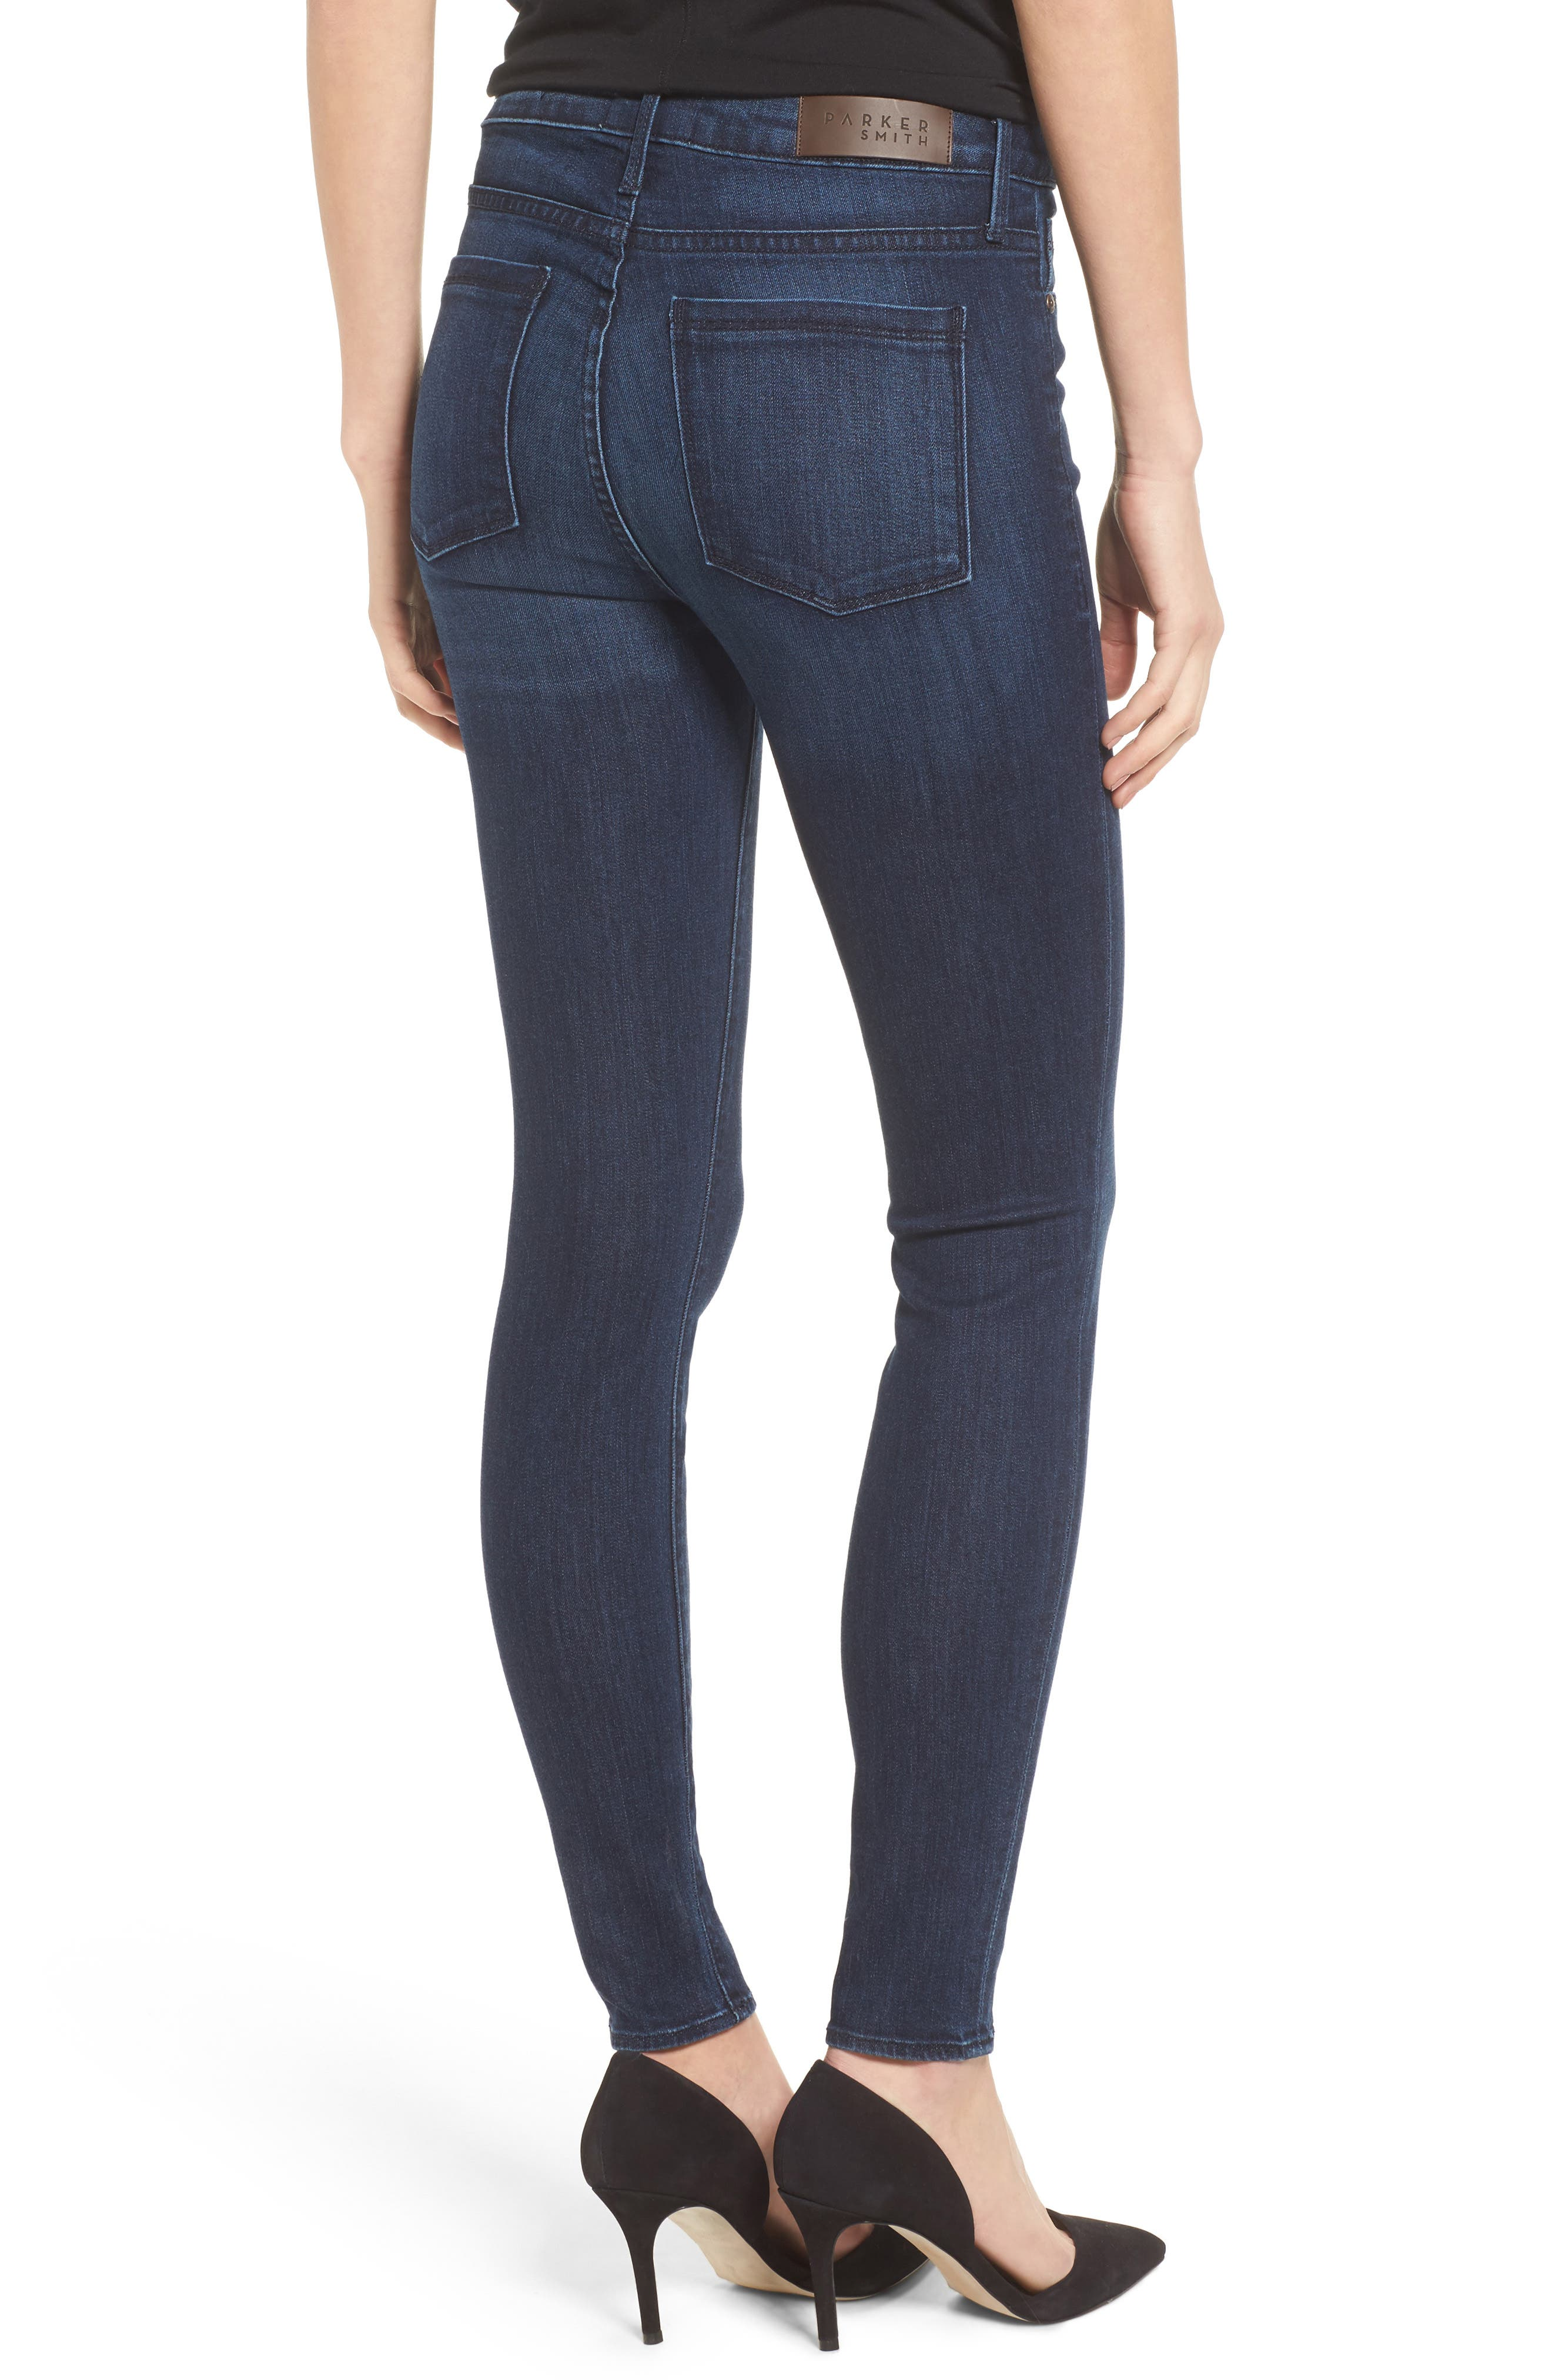 Bombshell High Waist Stretch Skinny Jeans,                             Alternate thumbnail 2, color,                             Stellers Jay